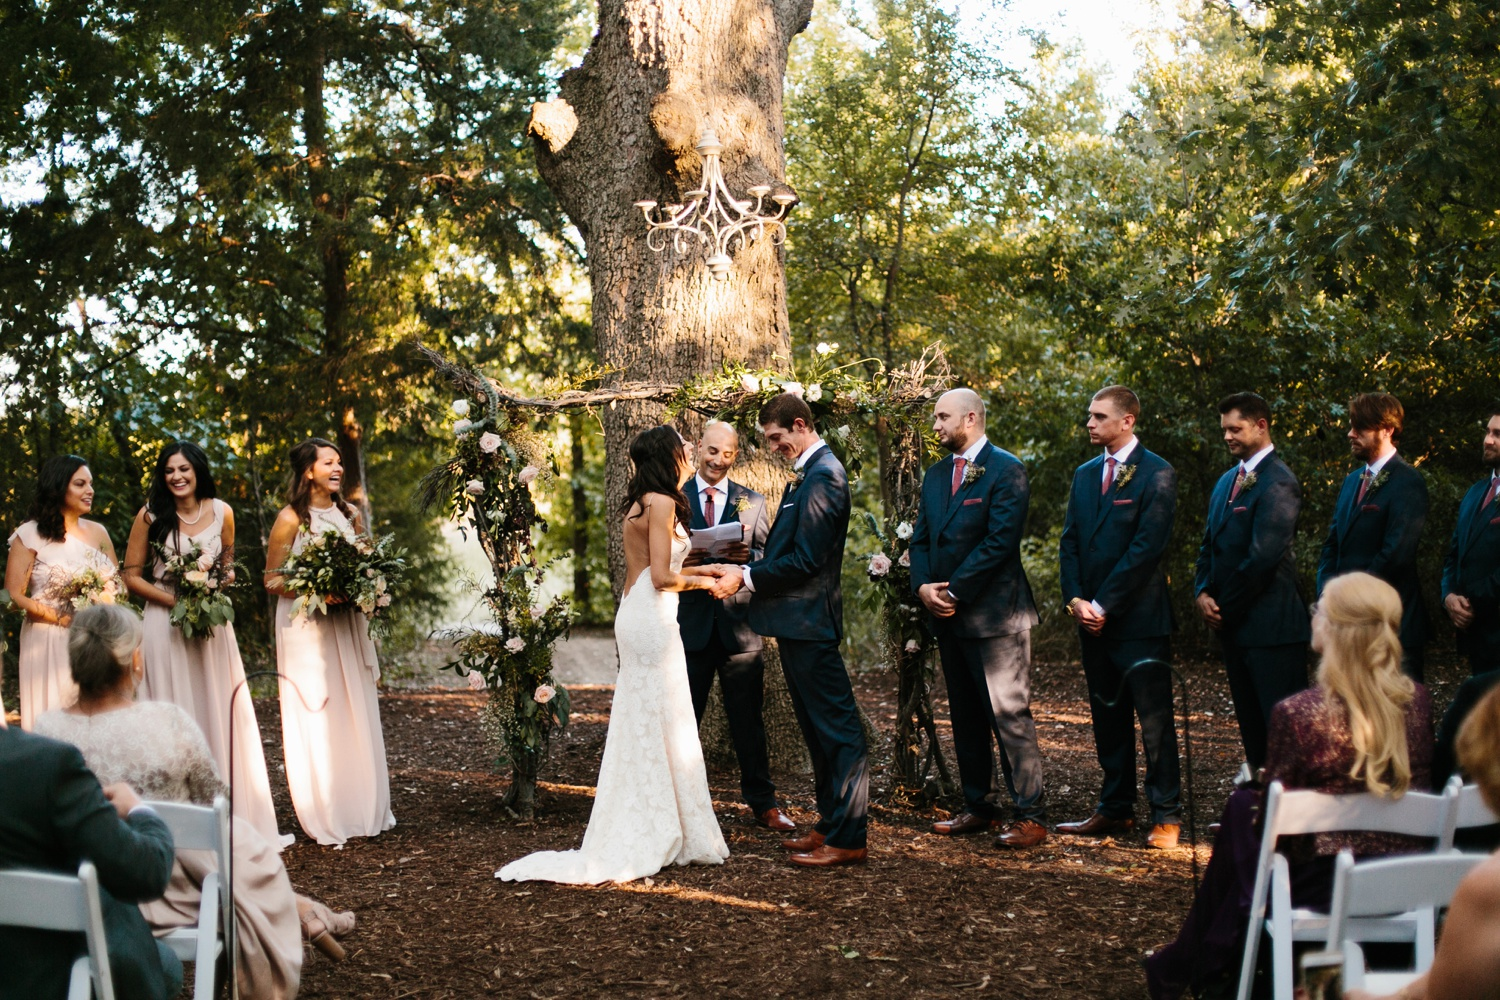 Erica + Henry | a bohemian inspired wedding at Chandlers Gardens in Salina, TX by North Texas Wedding Photographer Rachel Meagan Photography 076